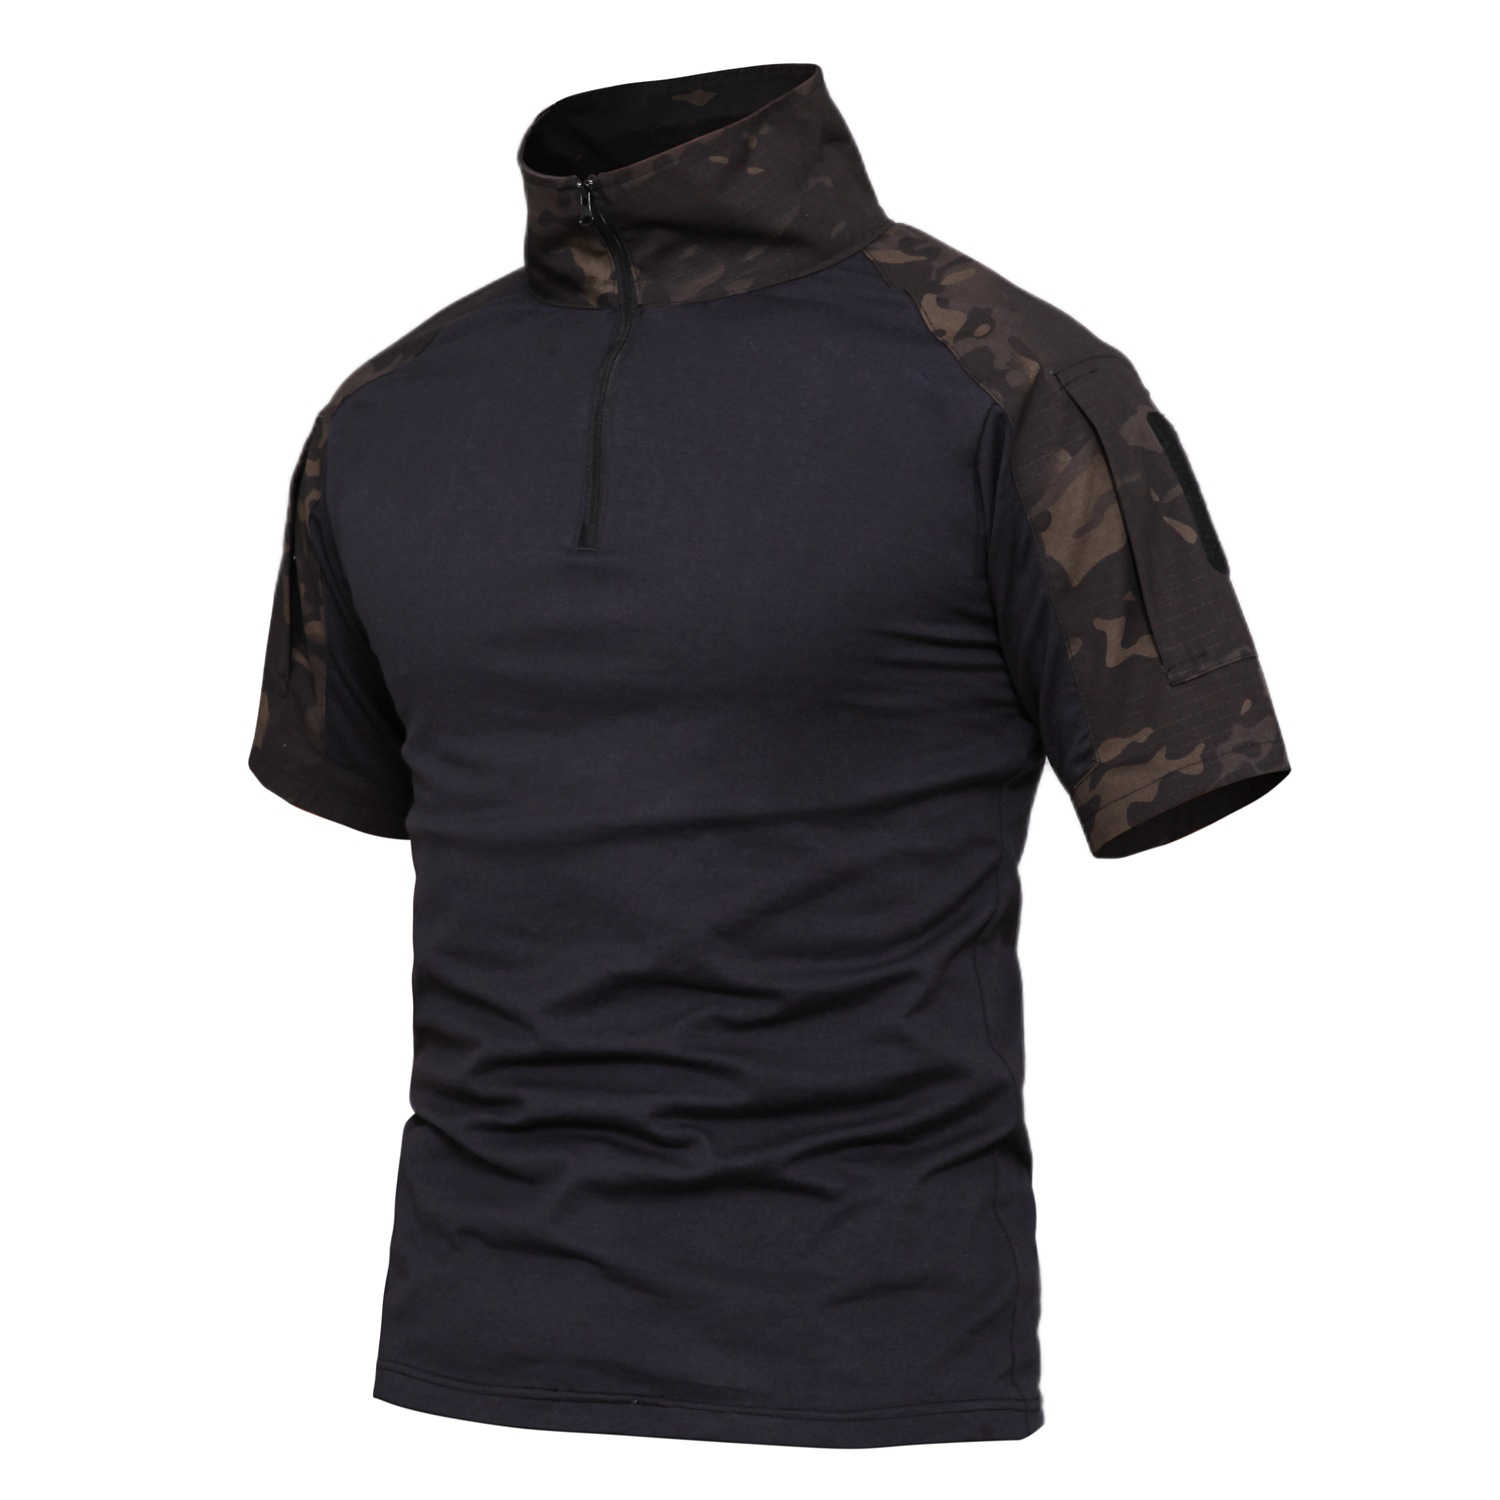 2019 Mannen Hunting Tactical Shirts Outdoor Korte Mouwen Basislaag Airsoft Paintball Militaire Leger Wandelen Jacht Combat Shirt